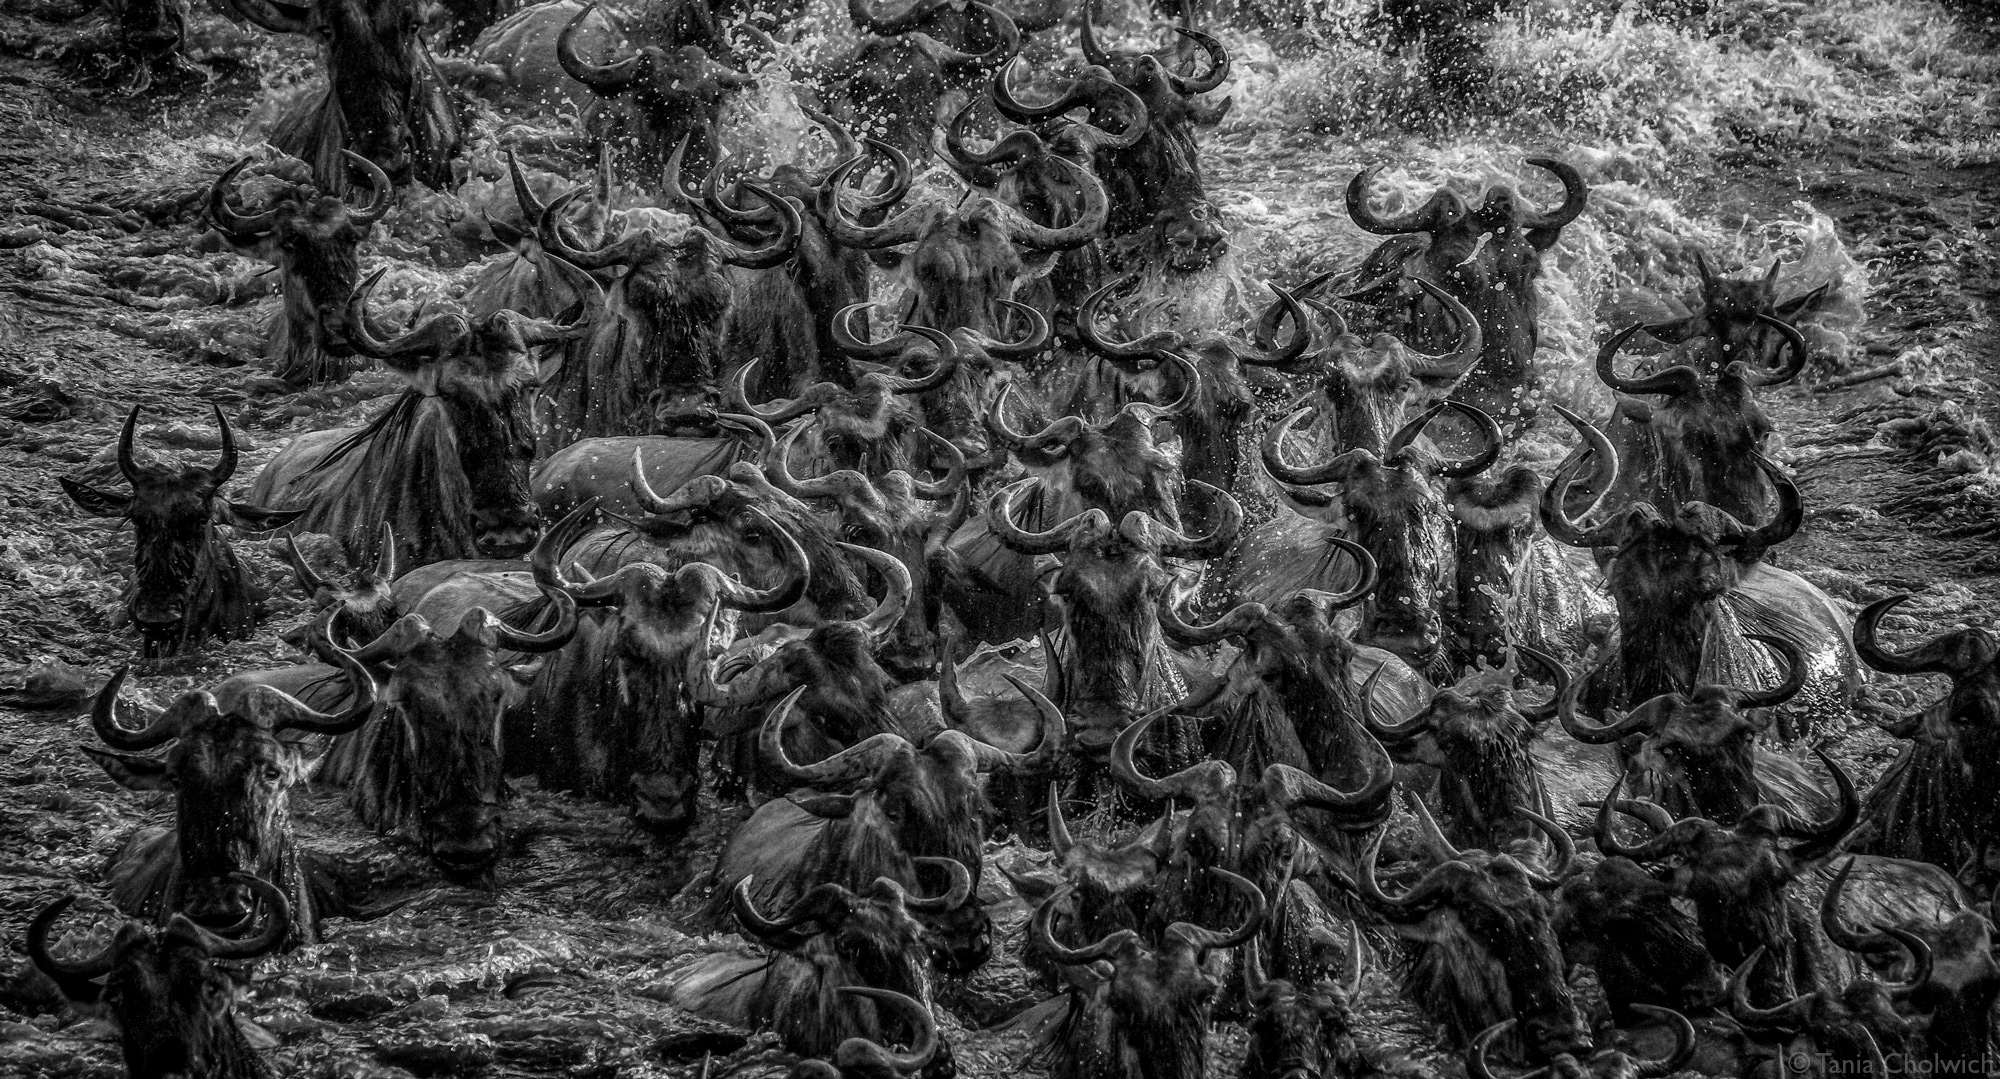 Wildbeest crossing the river in a large group during the Great Migration